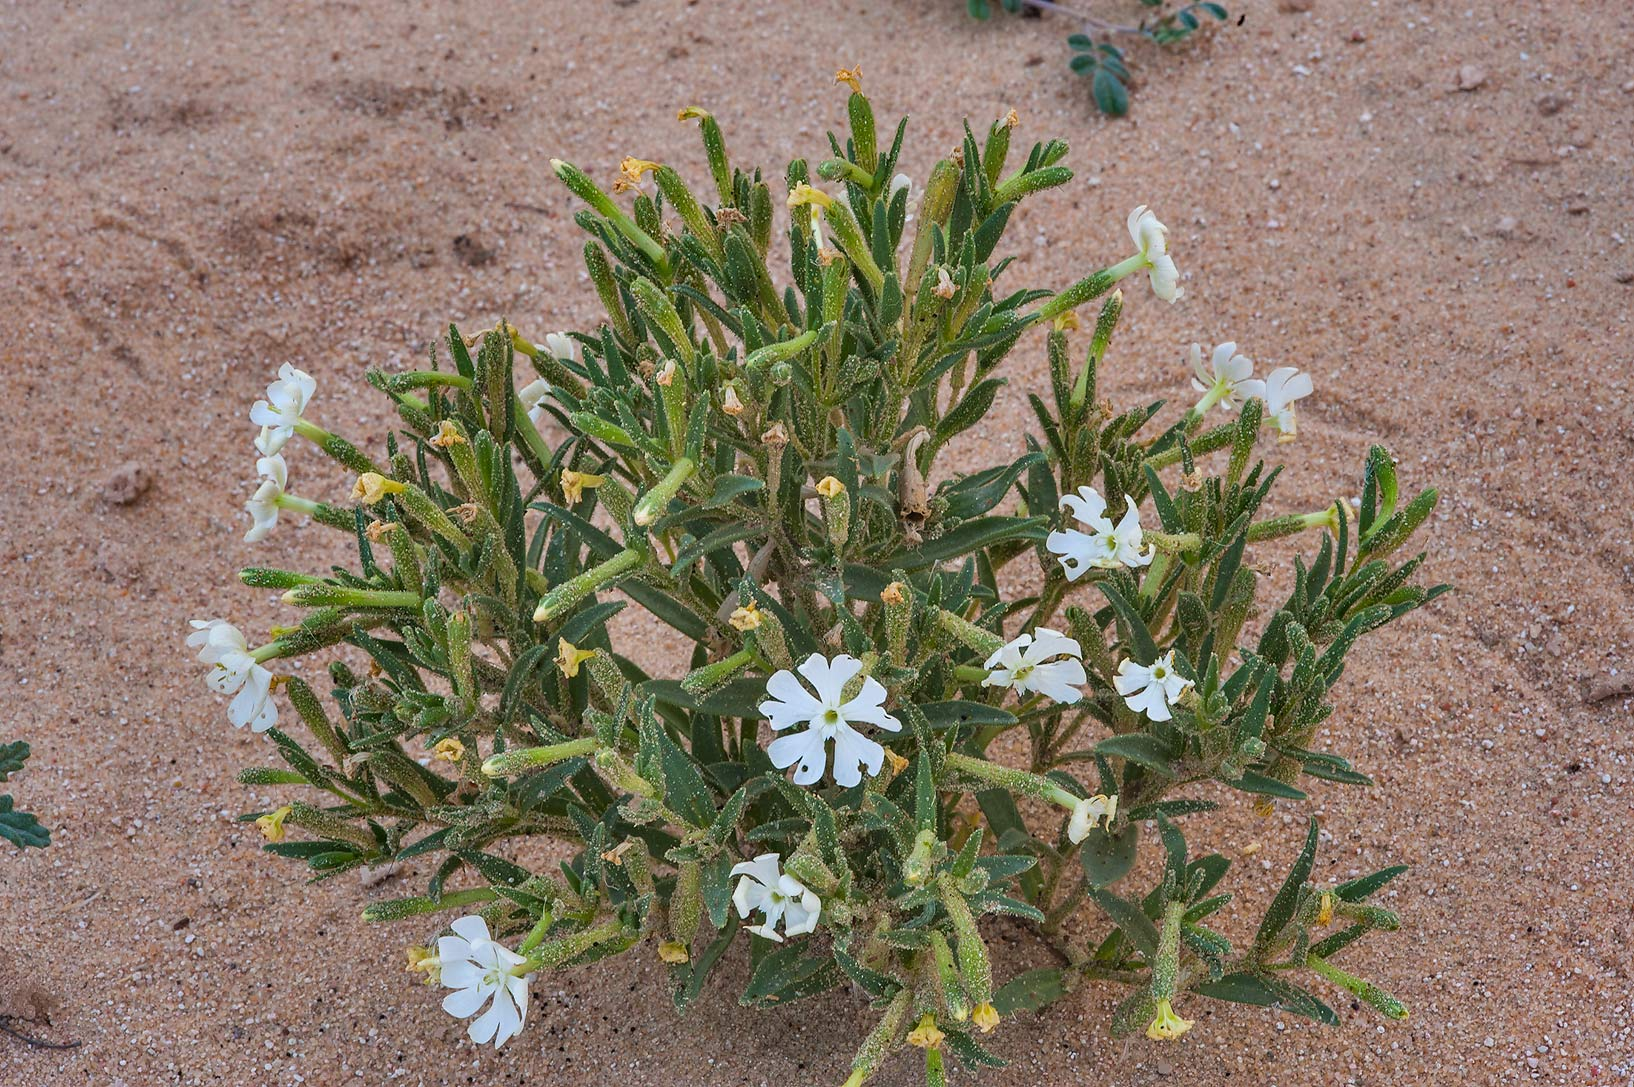 Desert Campion (Silene villosa, local name terba...of Khashem Al Nekhsh. Southern Qatar